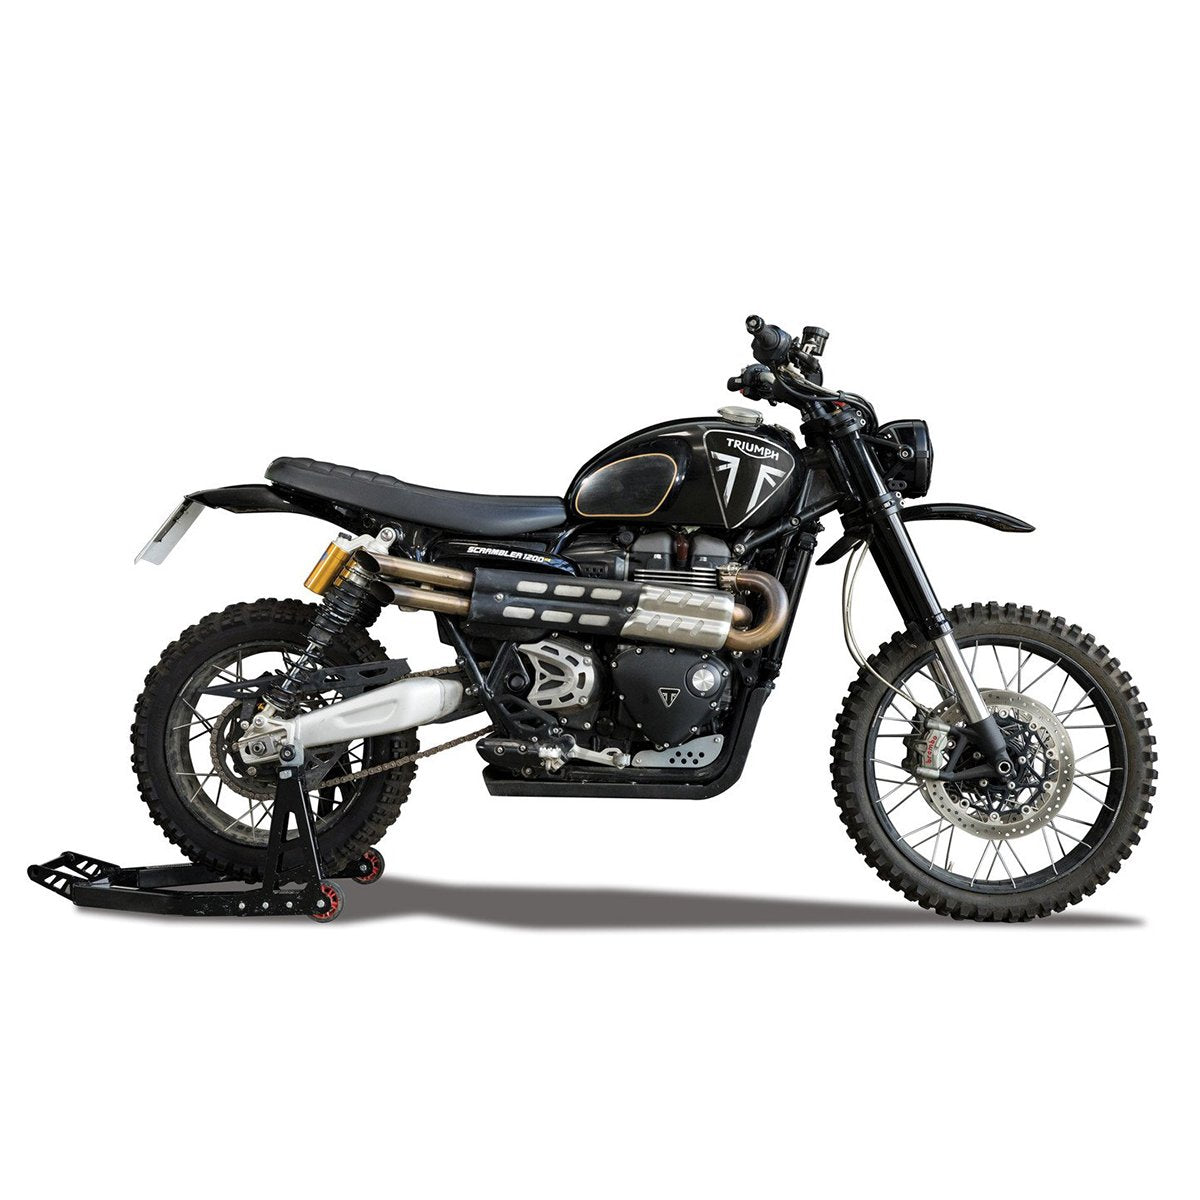 James Bond Triumph Scrambler 1200 - No Time To Die Edition - By Corgi (Pre-order)